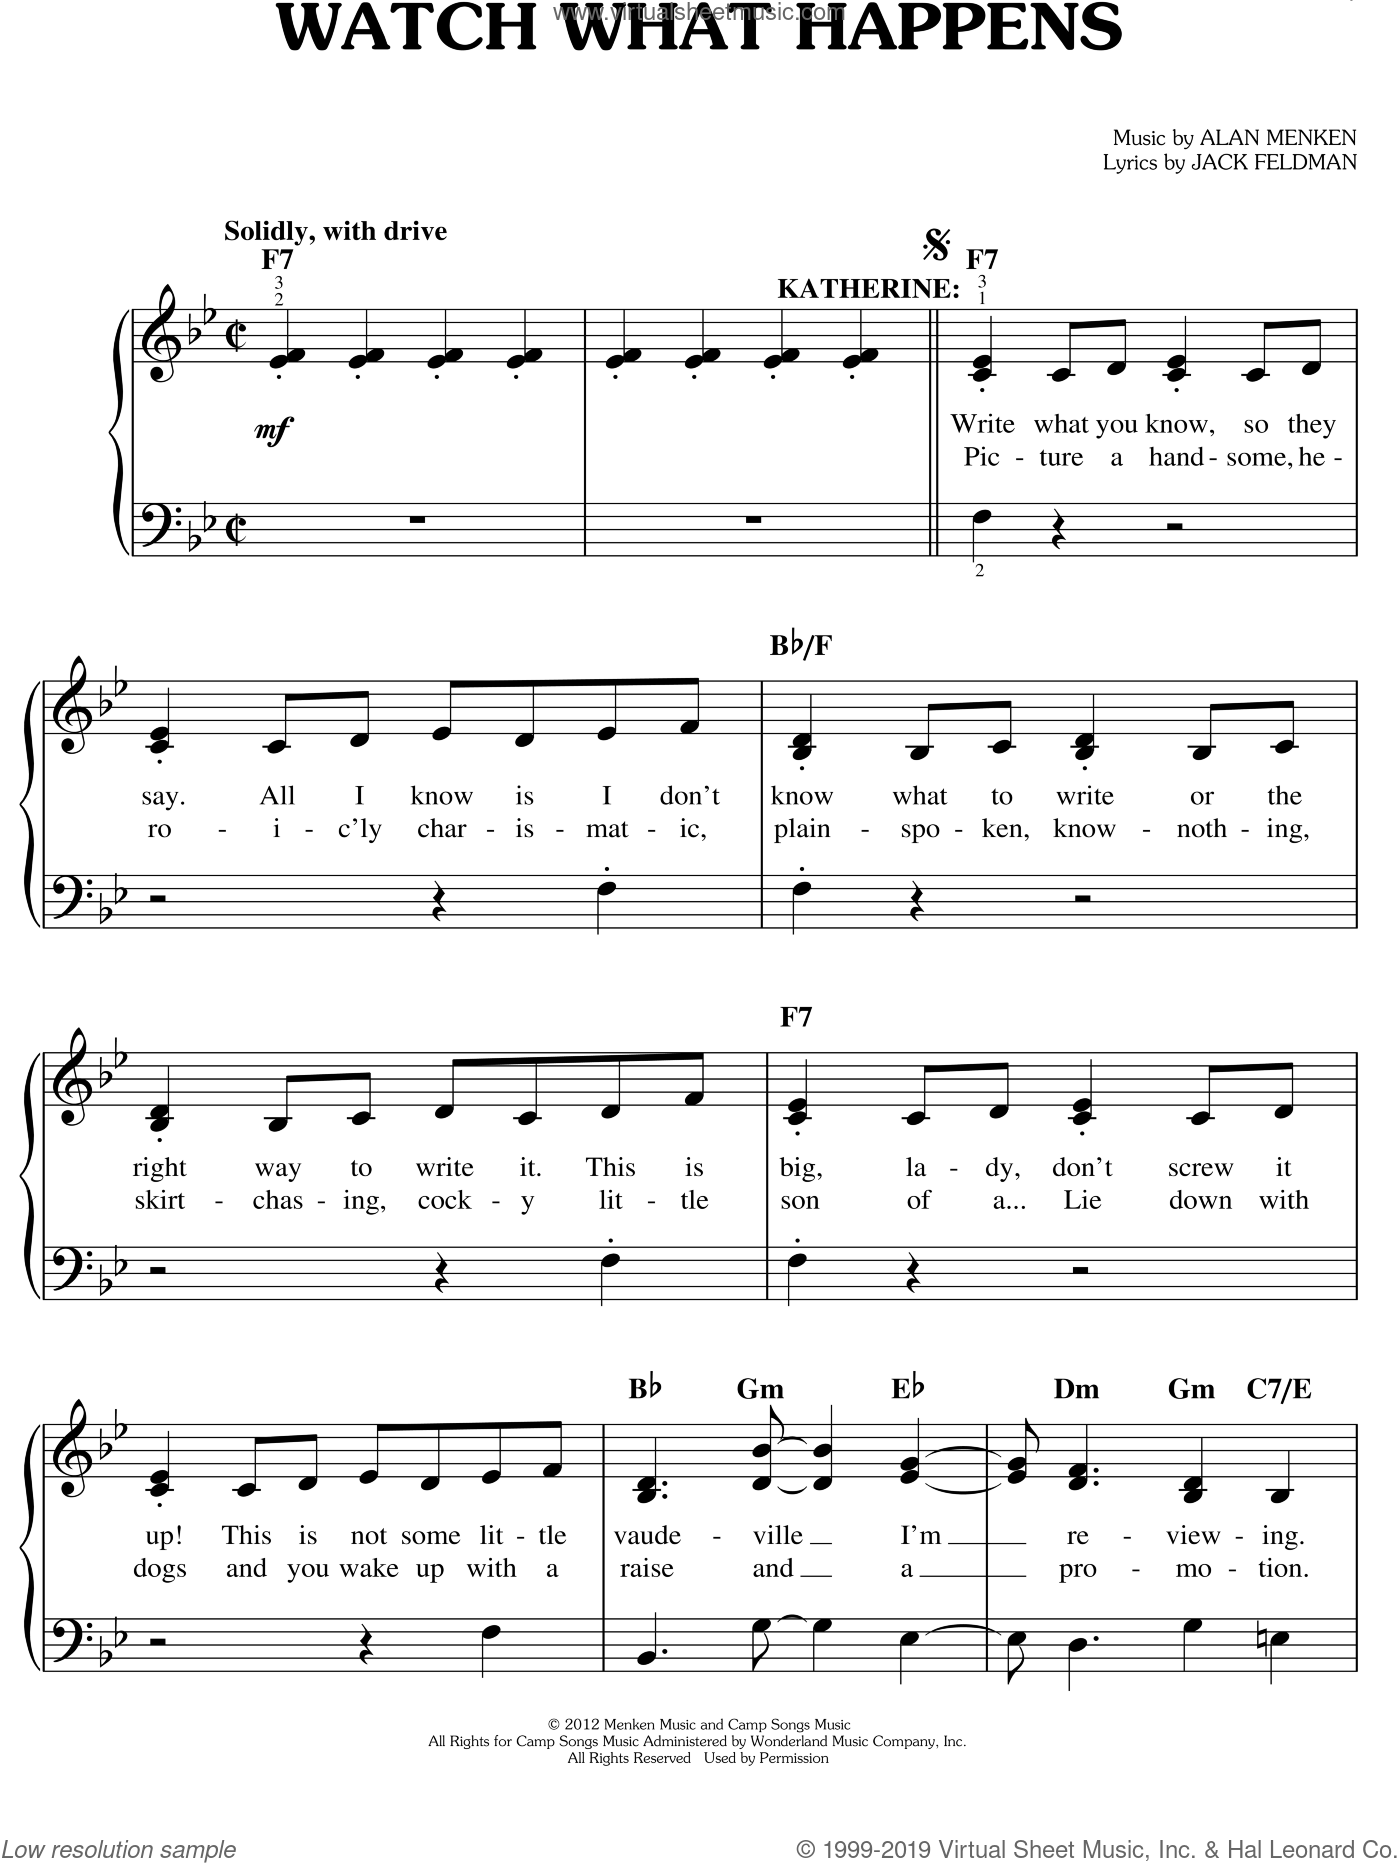 Watch What Happens sheet music for piano solo (chords) by Alan Menken